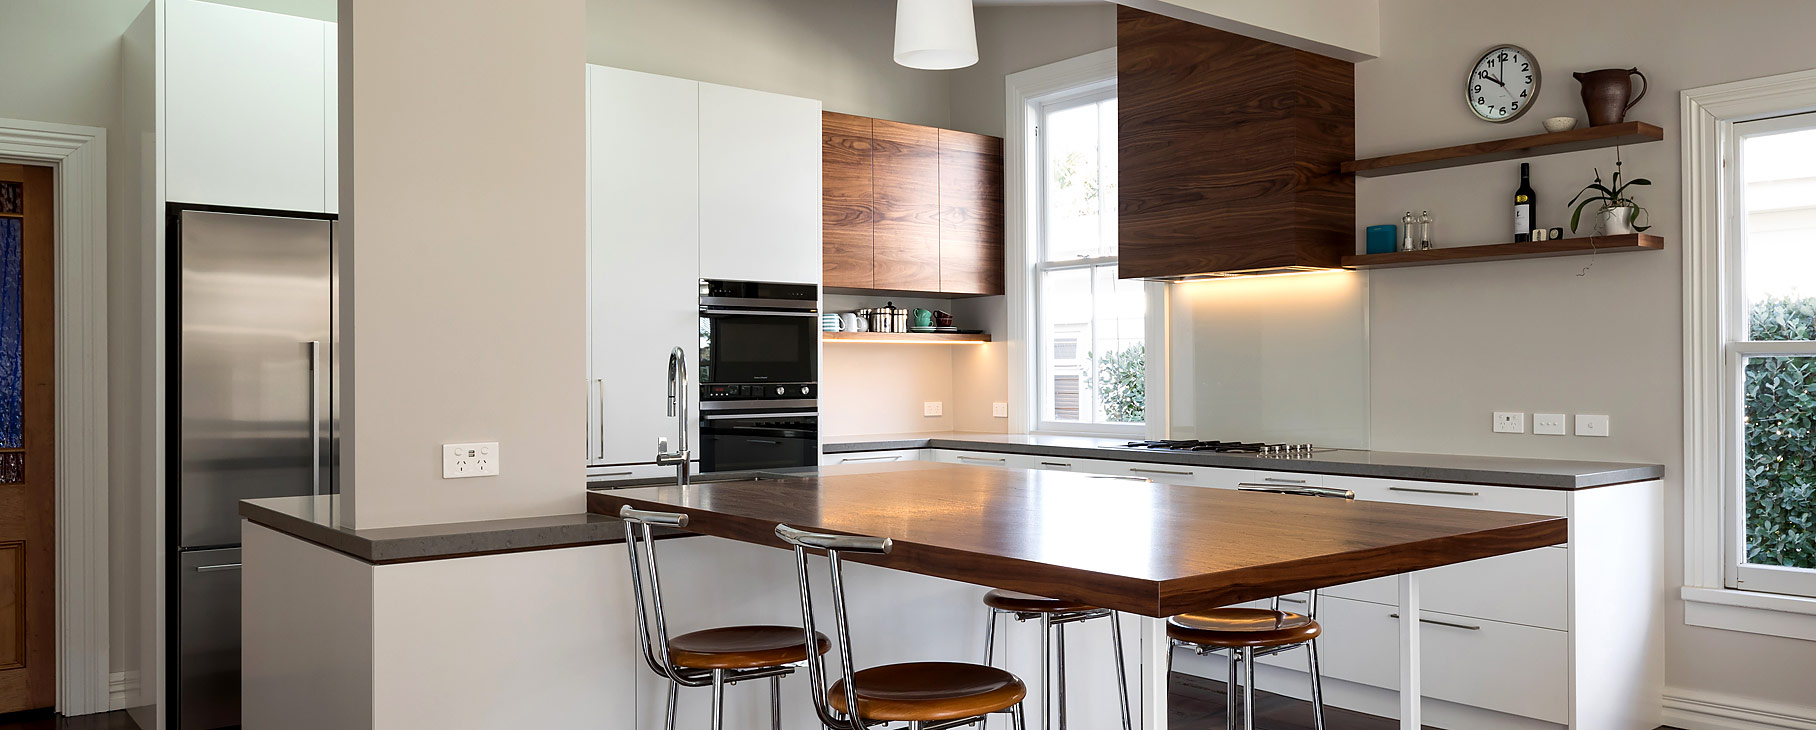 Top Quality Kitchen Design NZ | Bathrooms & Joinery | Neo Design